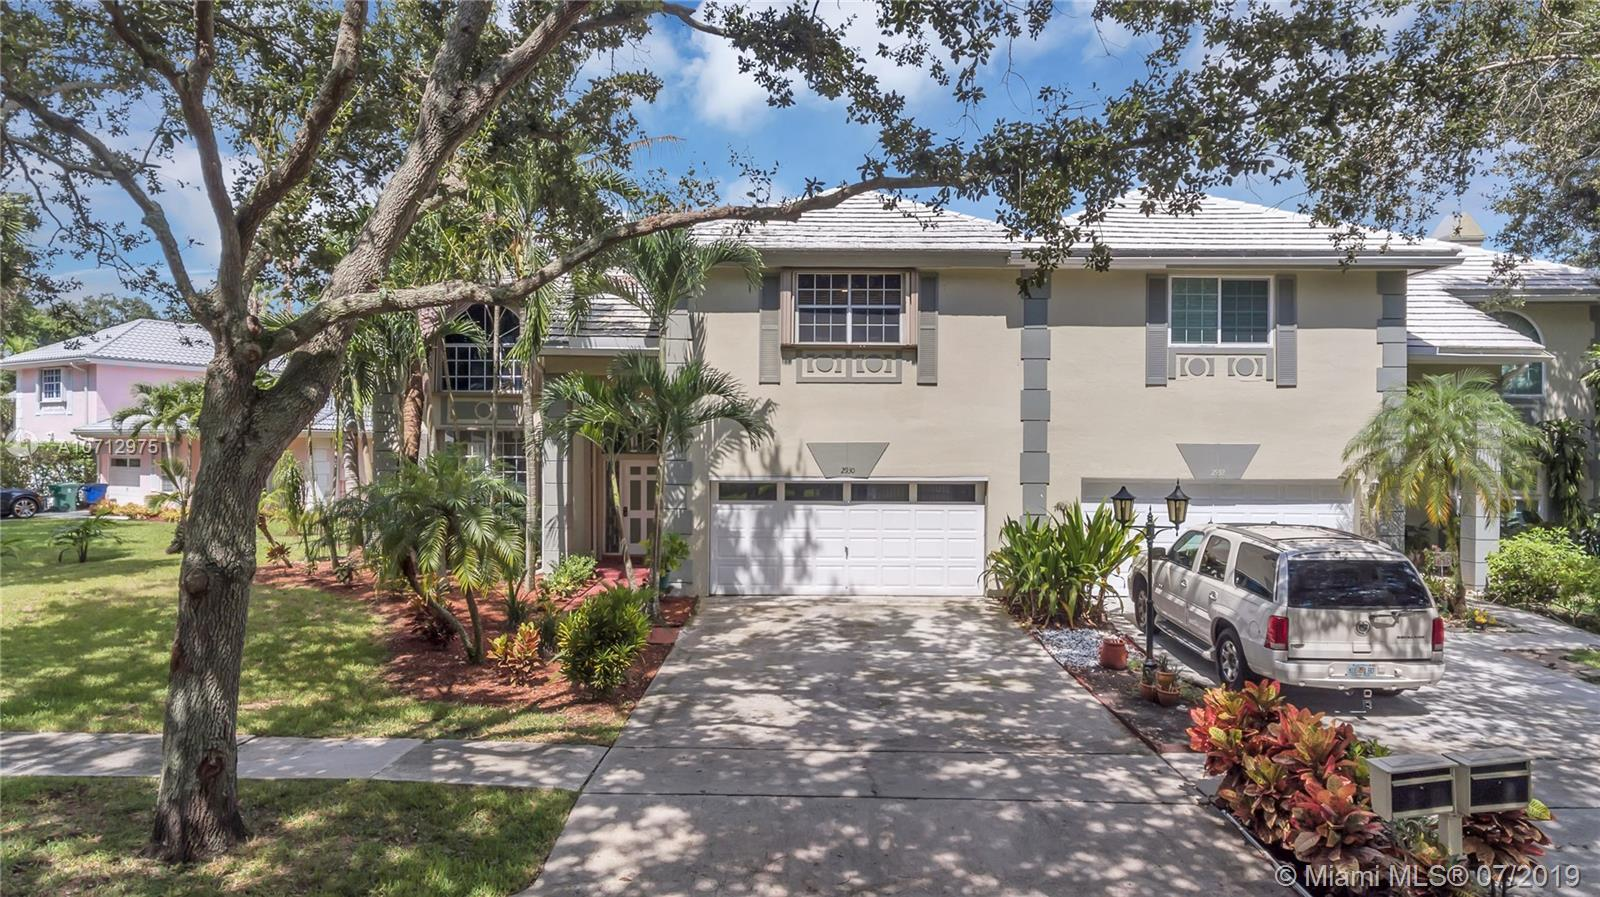 2930 San Jose Ave, Cooper City, FL 33026